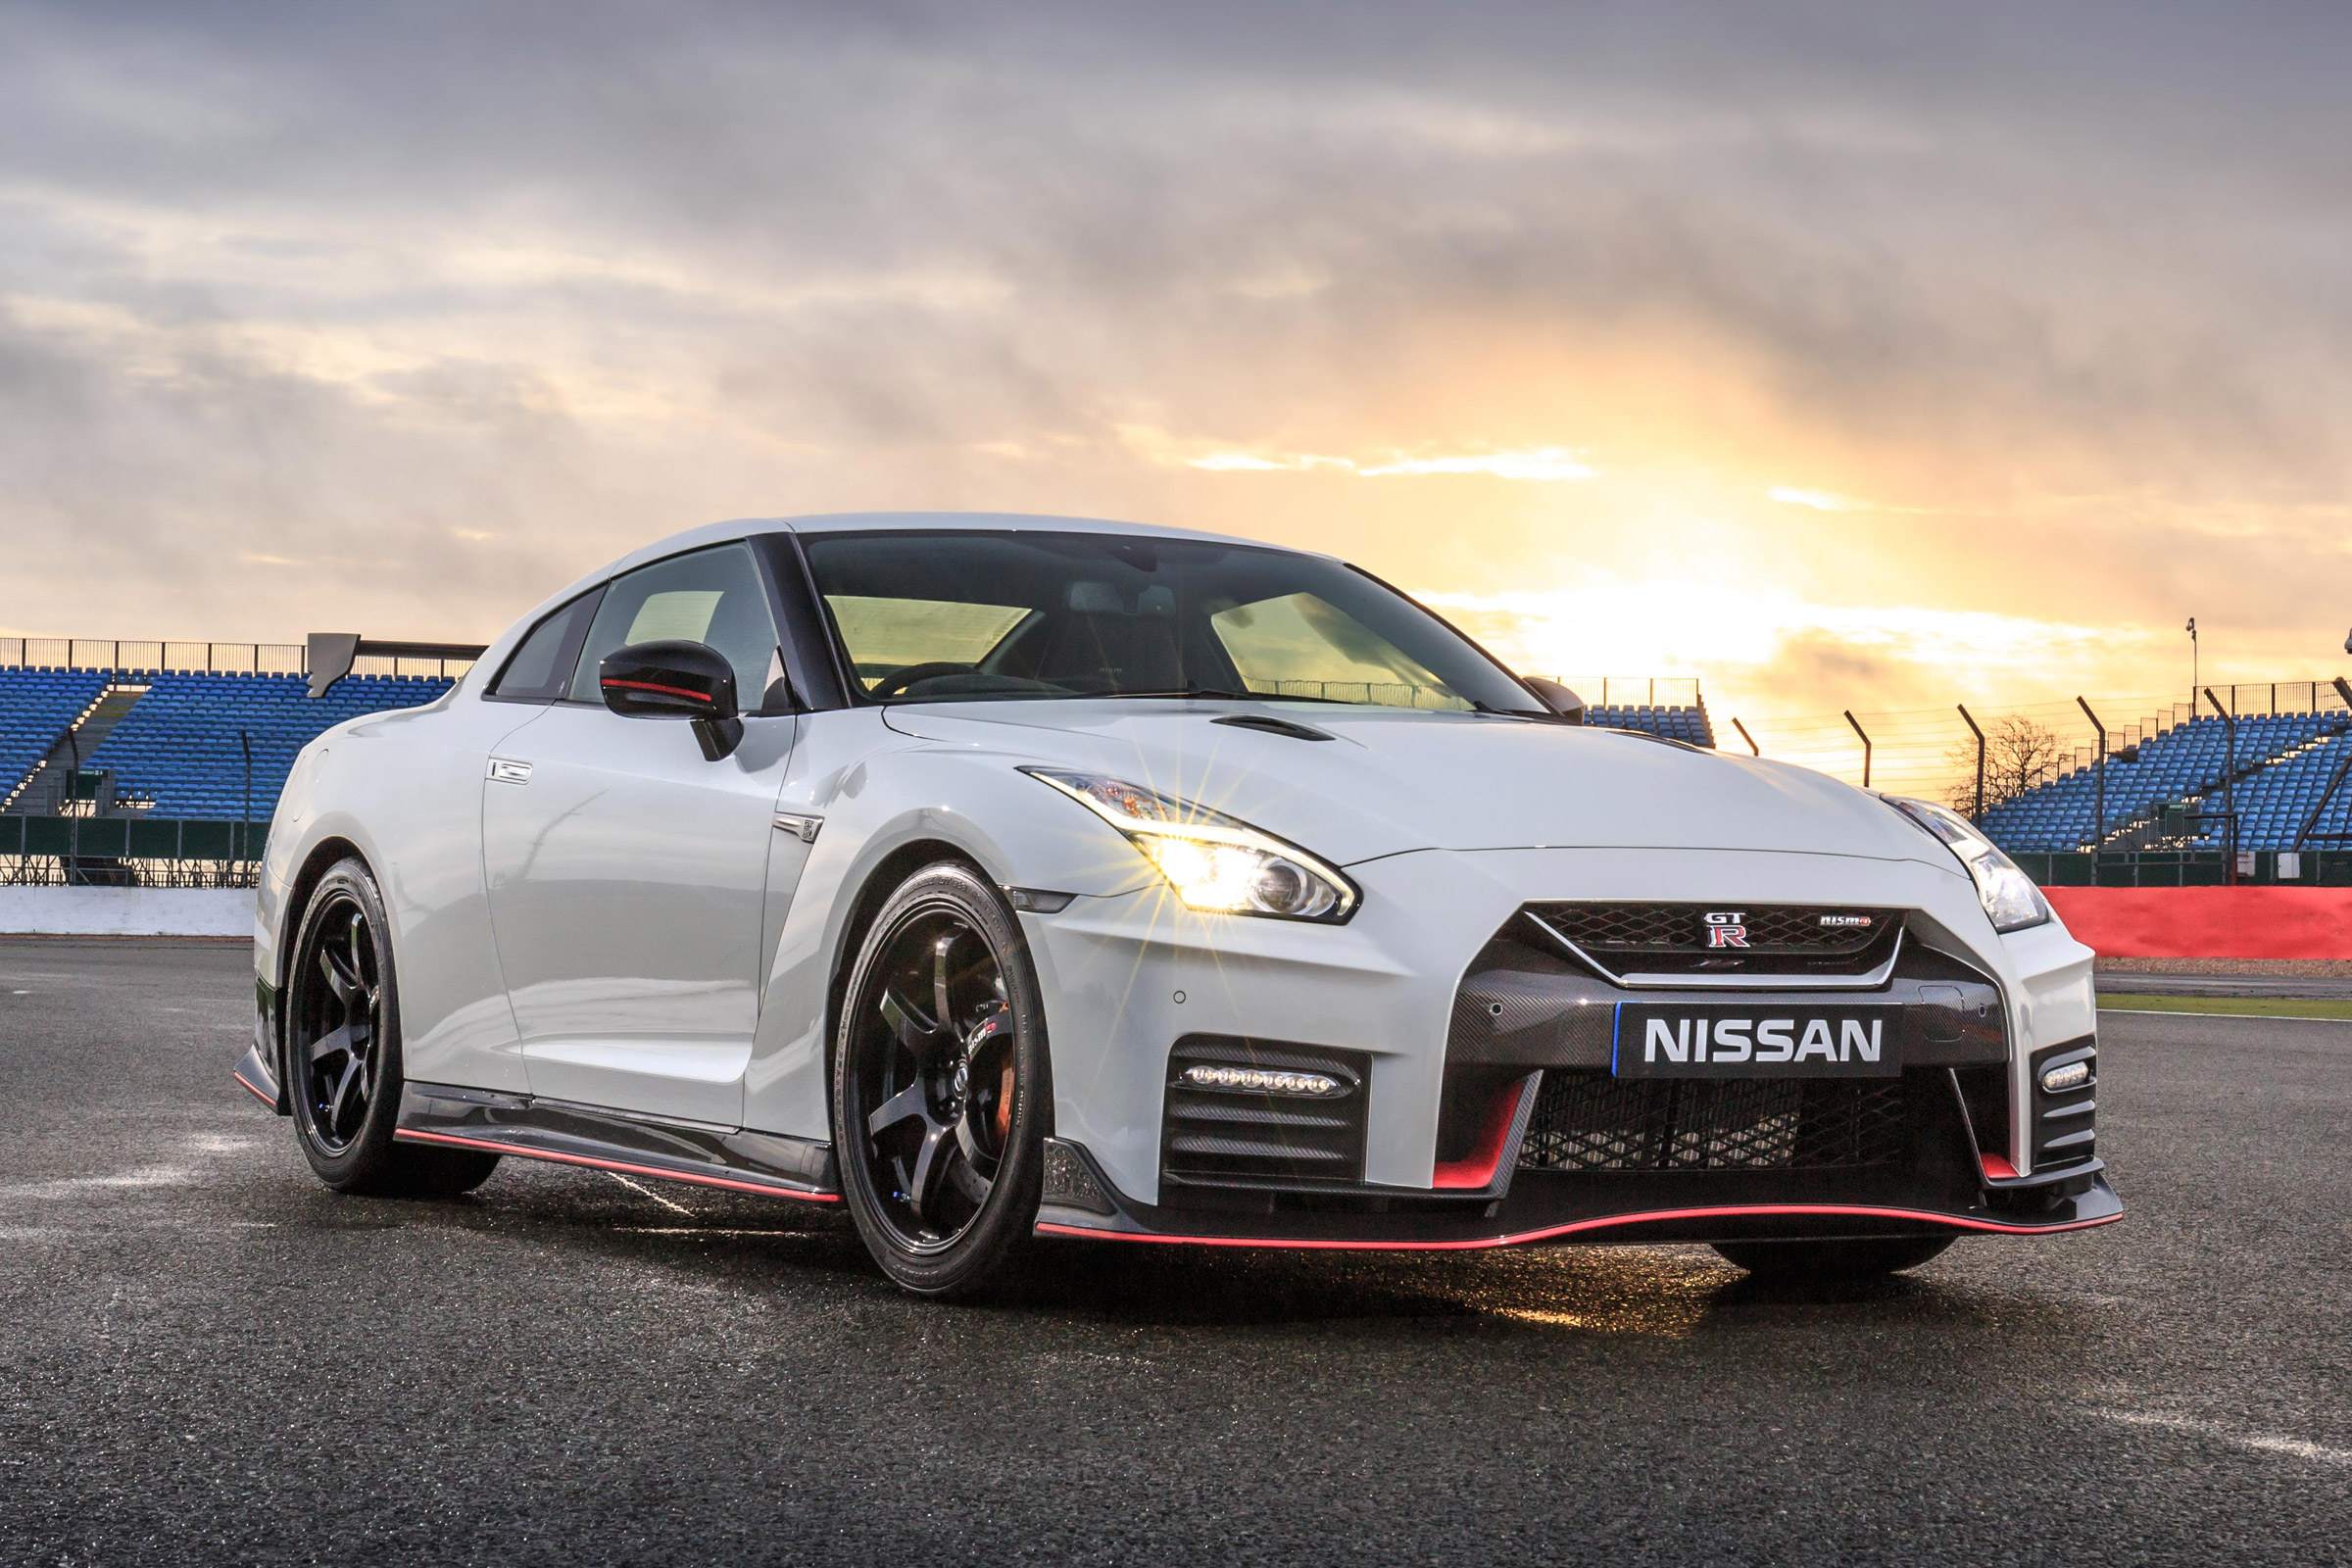 2017 Nissan GT R NISMO Exterior (Photo 4 of 22)